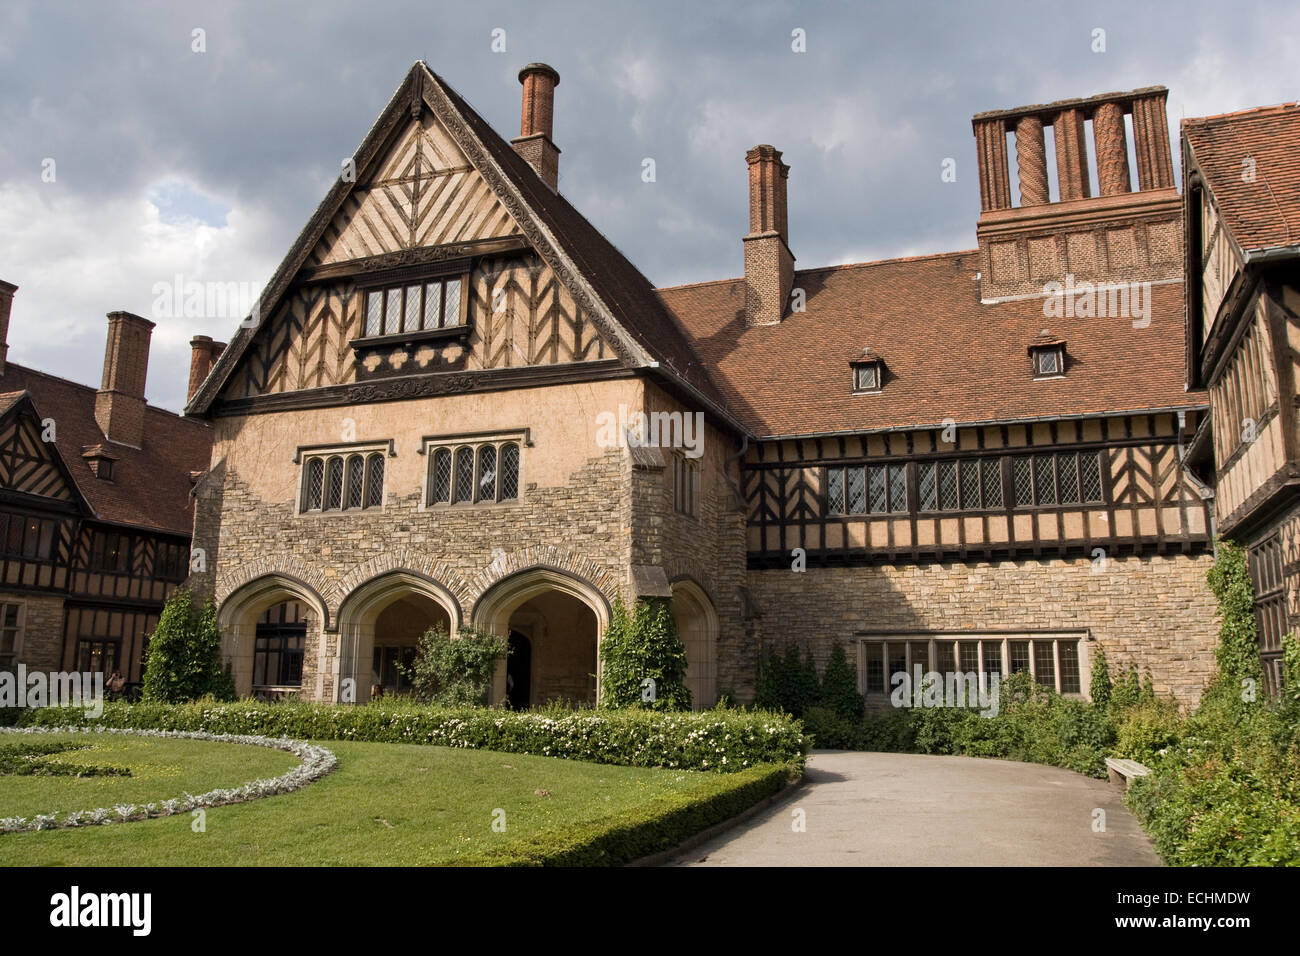 Europe, Germany, Brandenburg, Potsdam, New Garden, Cecilienhof Castle - Stock Image